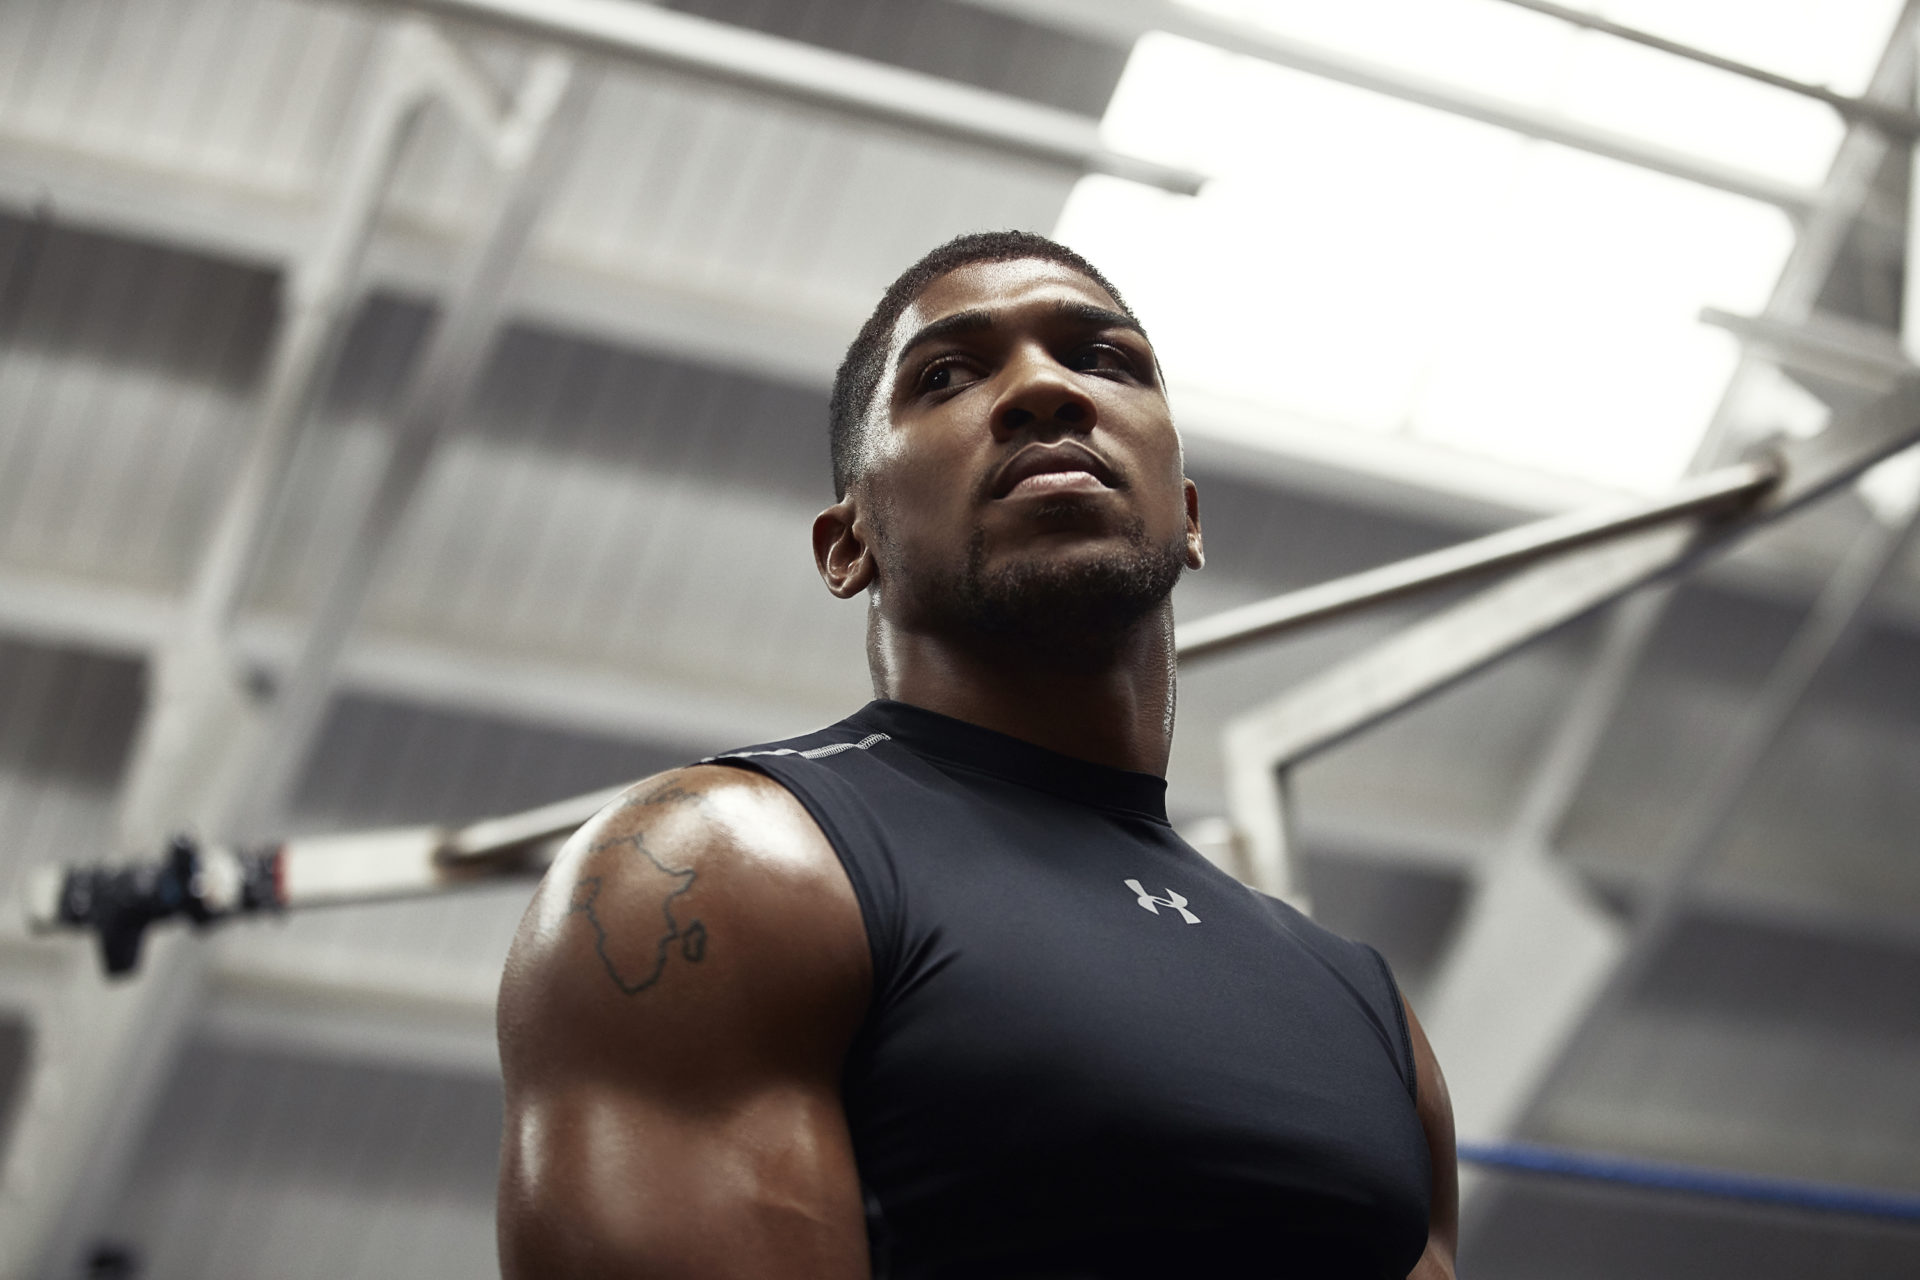 Anthony J for Under Armour